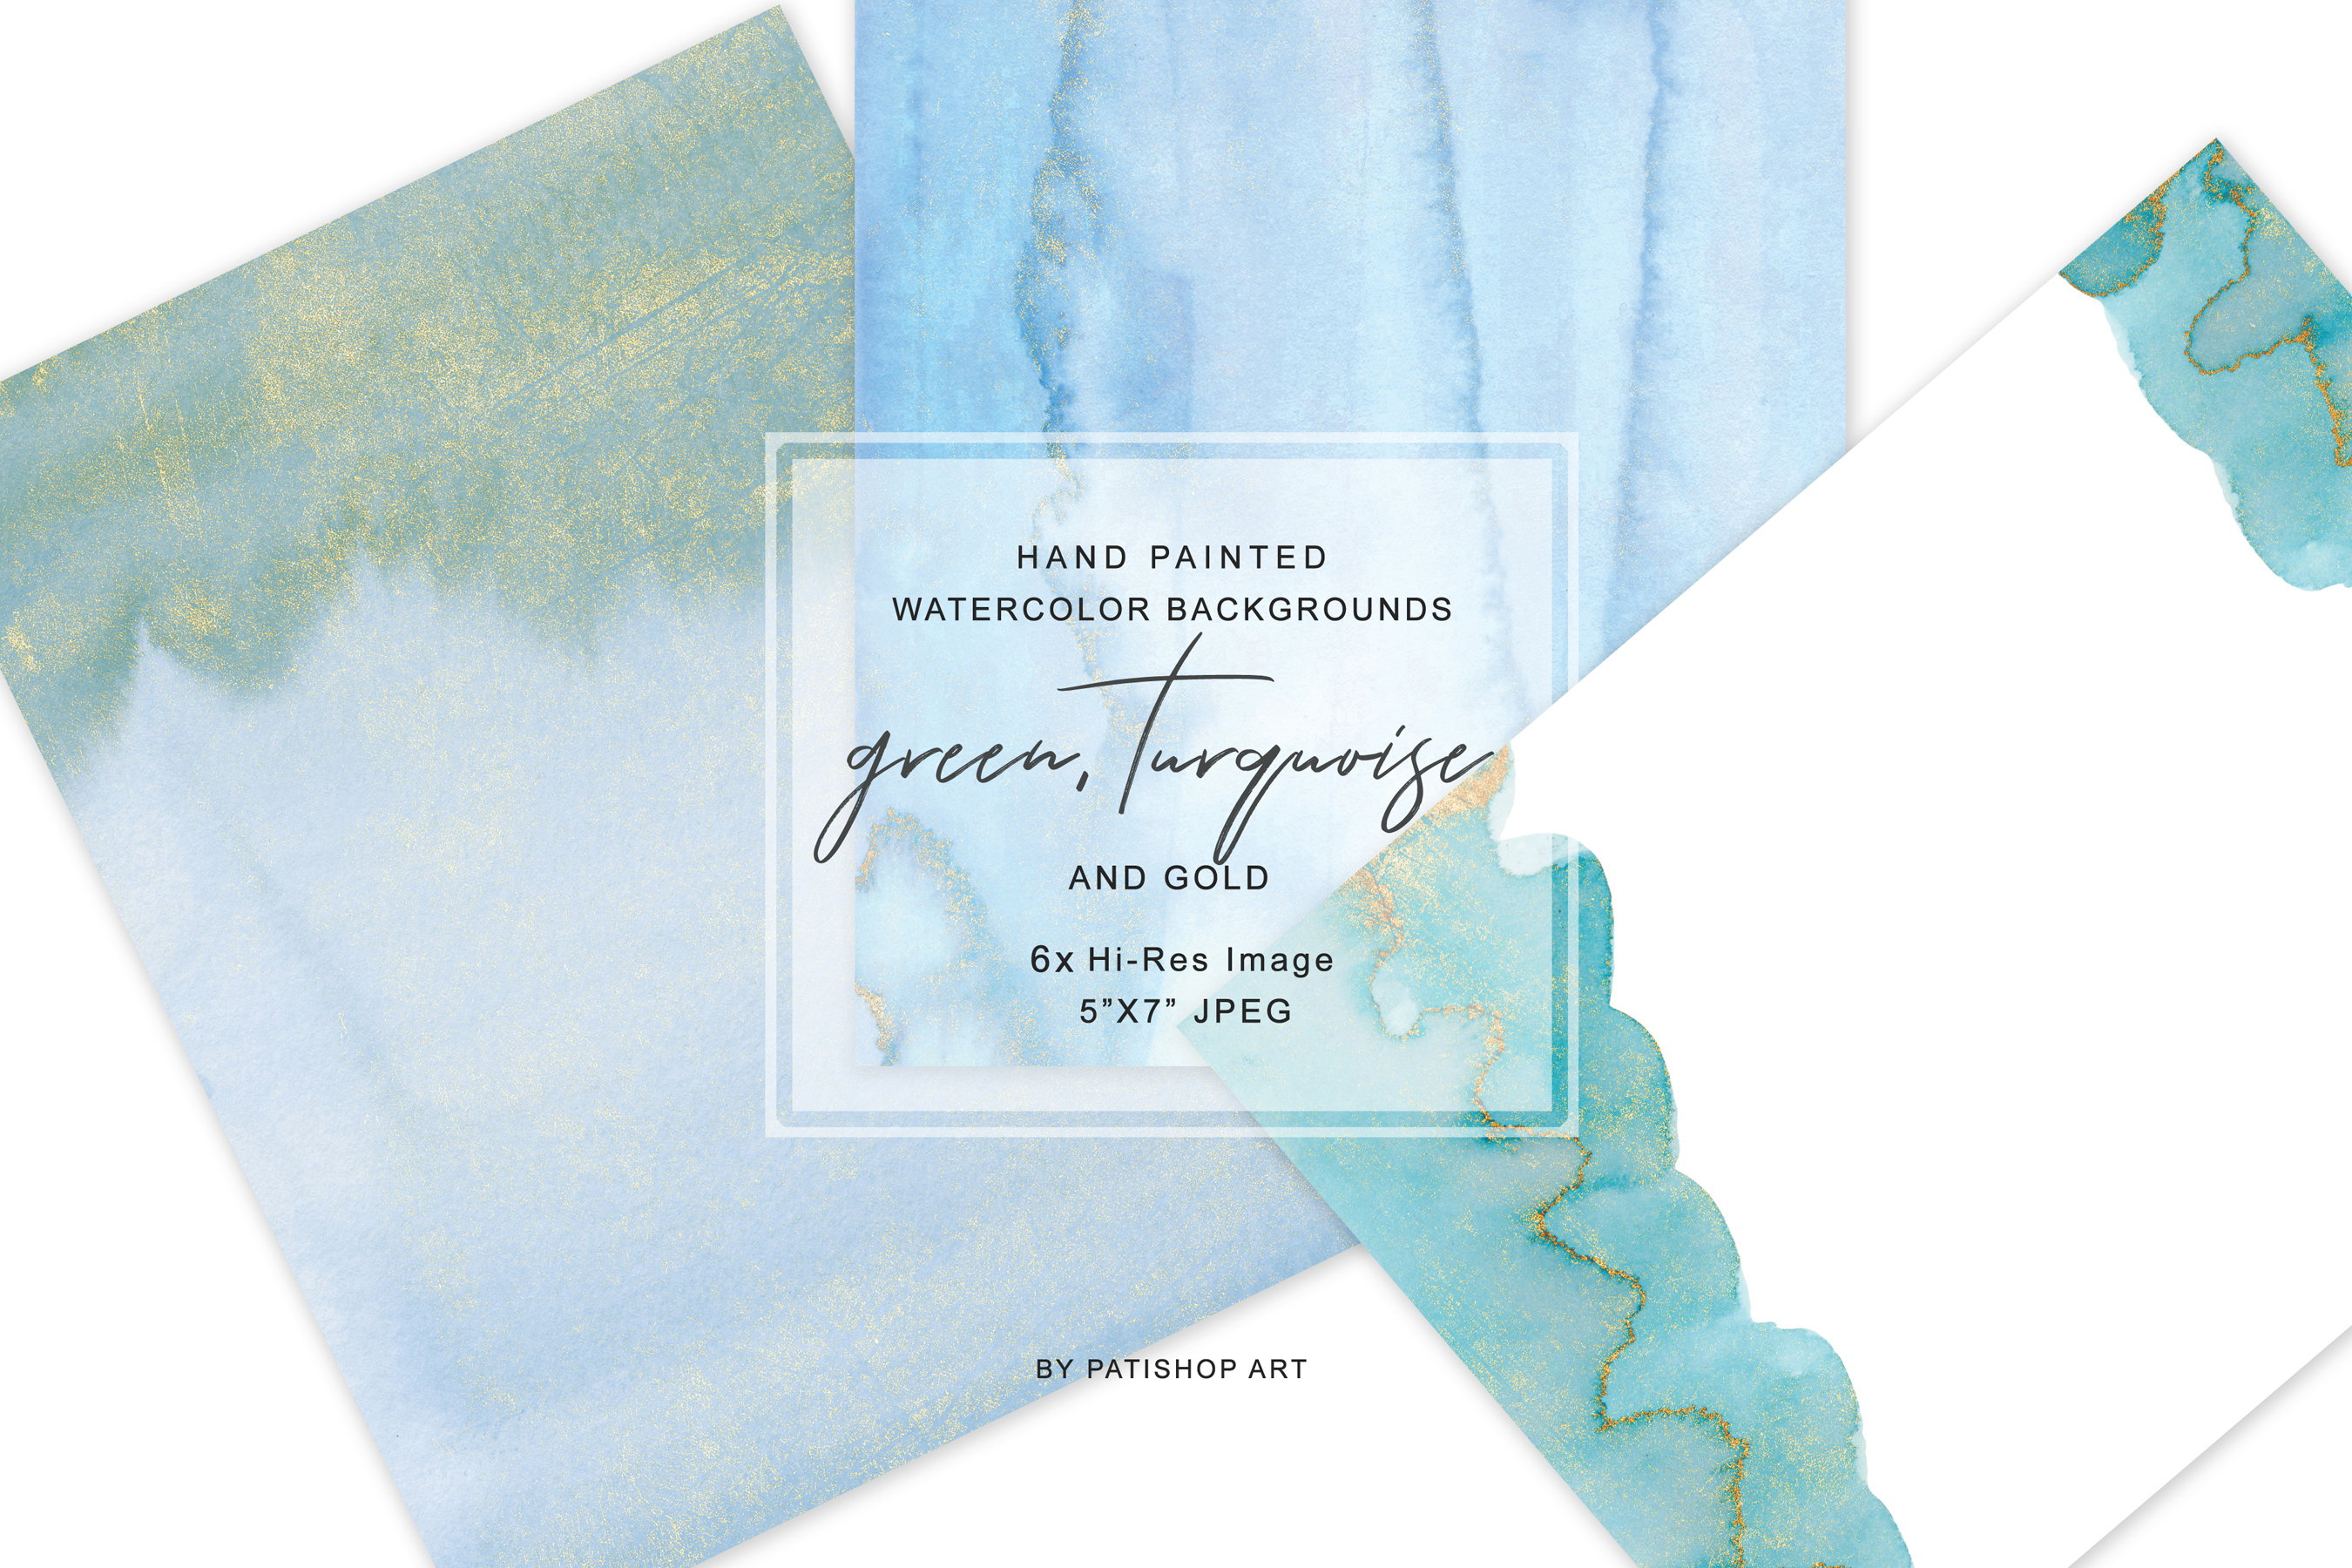 Watercolor Glittered Green & Turquoise Background 5x7 example image 3